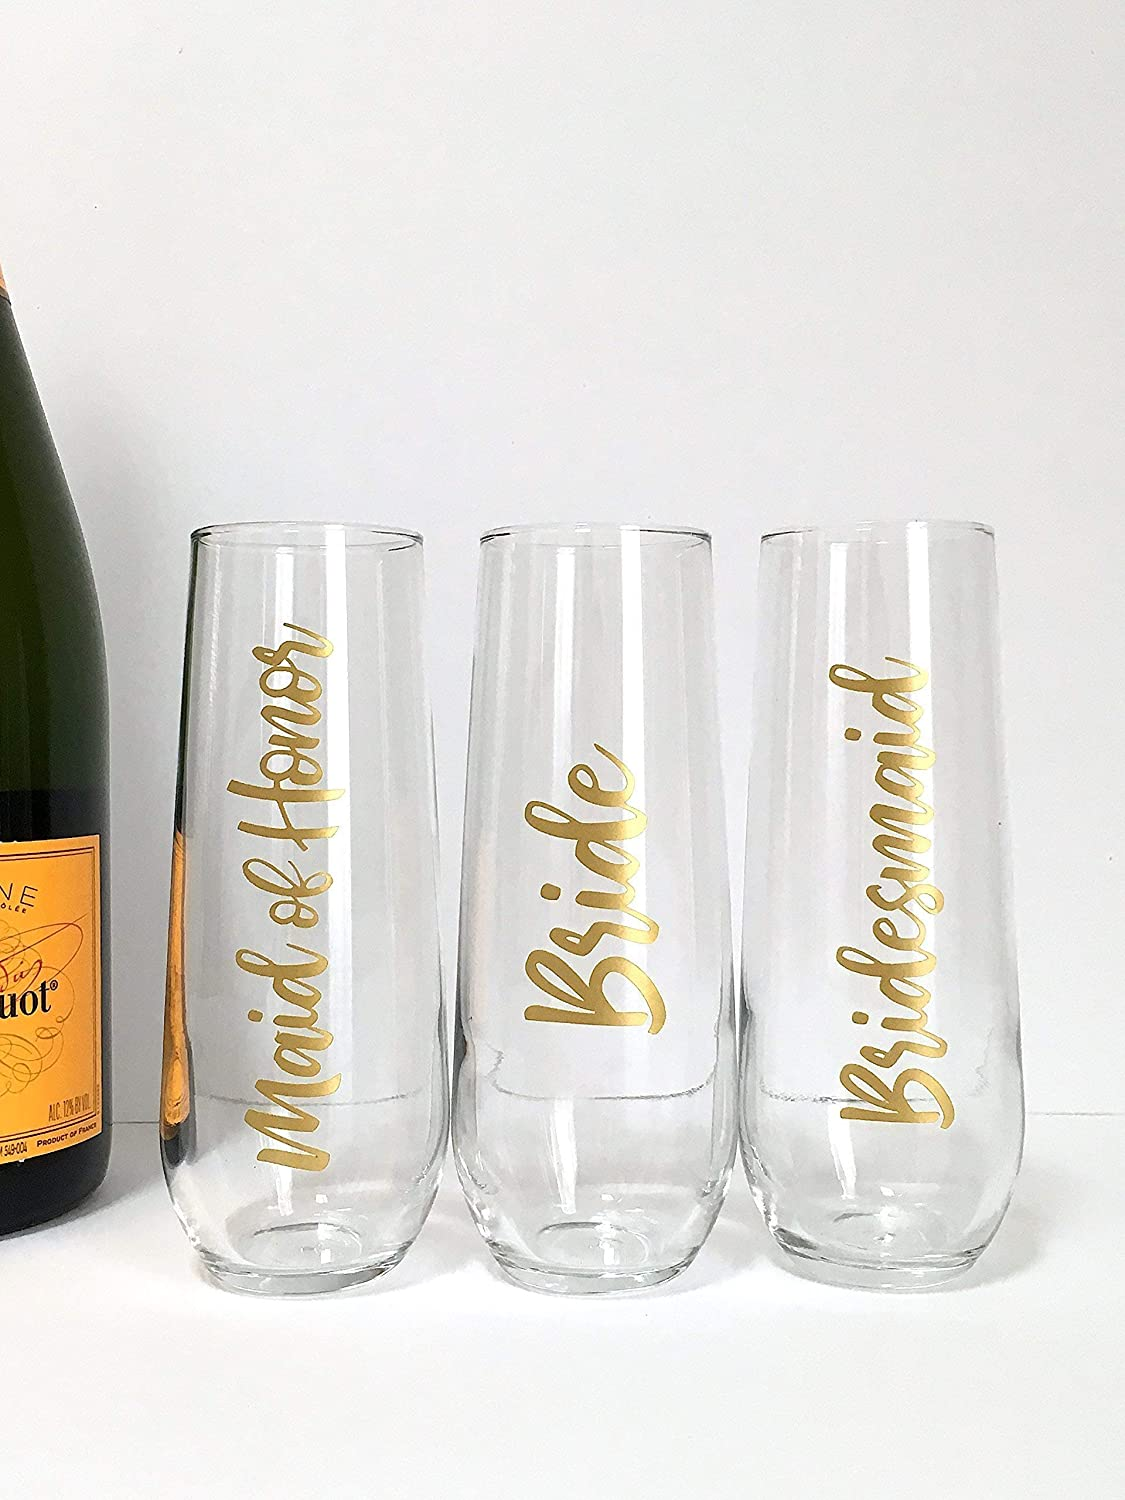 Wedding Champagne Flutes - Bridesmaid - Maid of Honor - Matron - Mother of the Bride and Groom